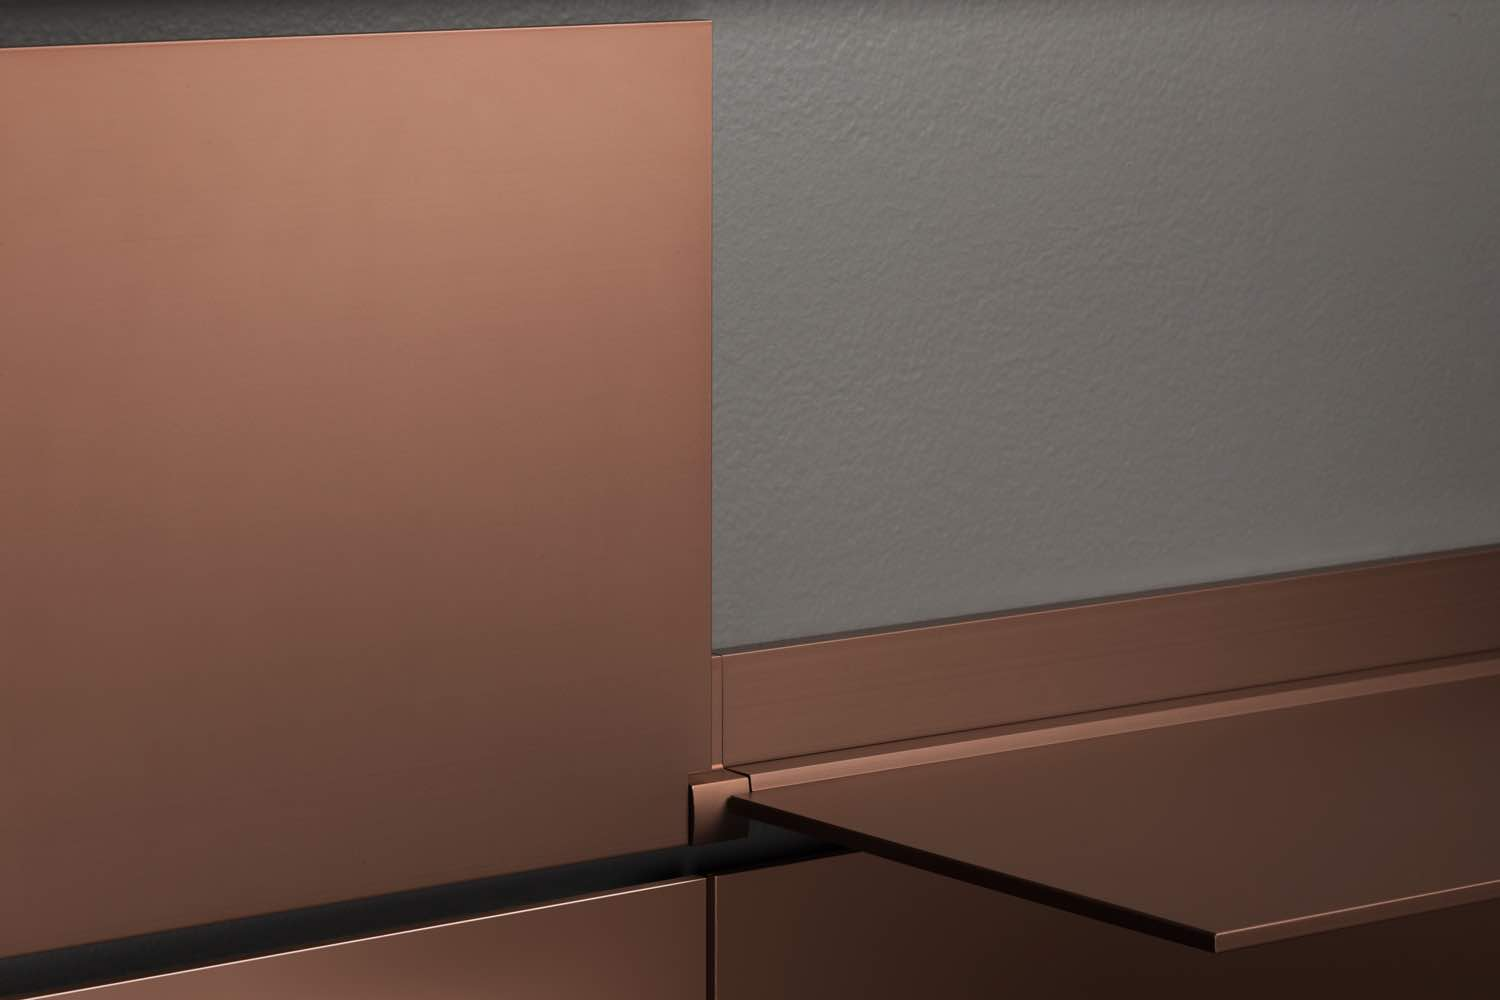 riveli_shelf_finish_copper.jpg